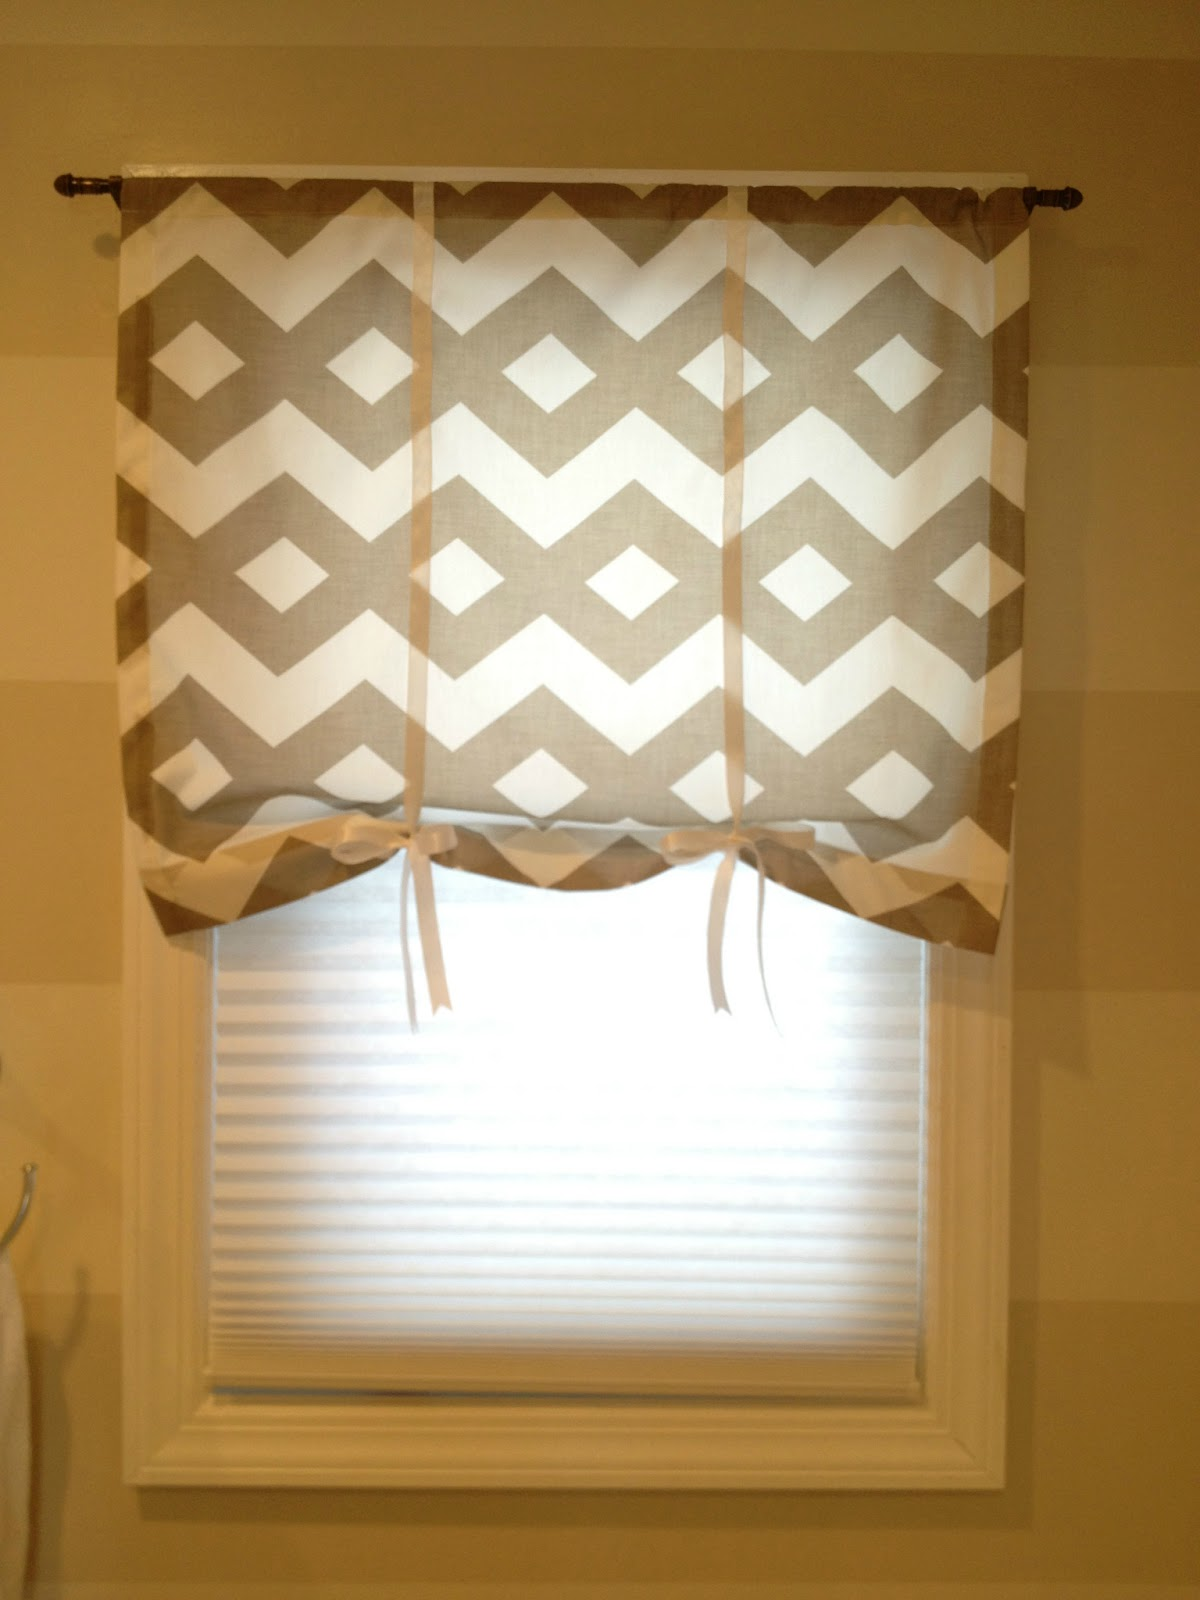 Retro Ranch Reno: Main/Guest Bathroom Curtain